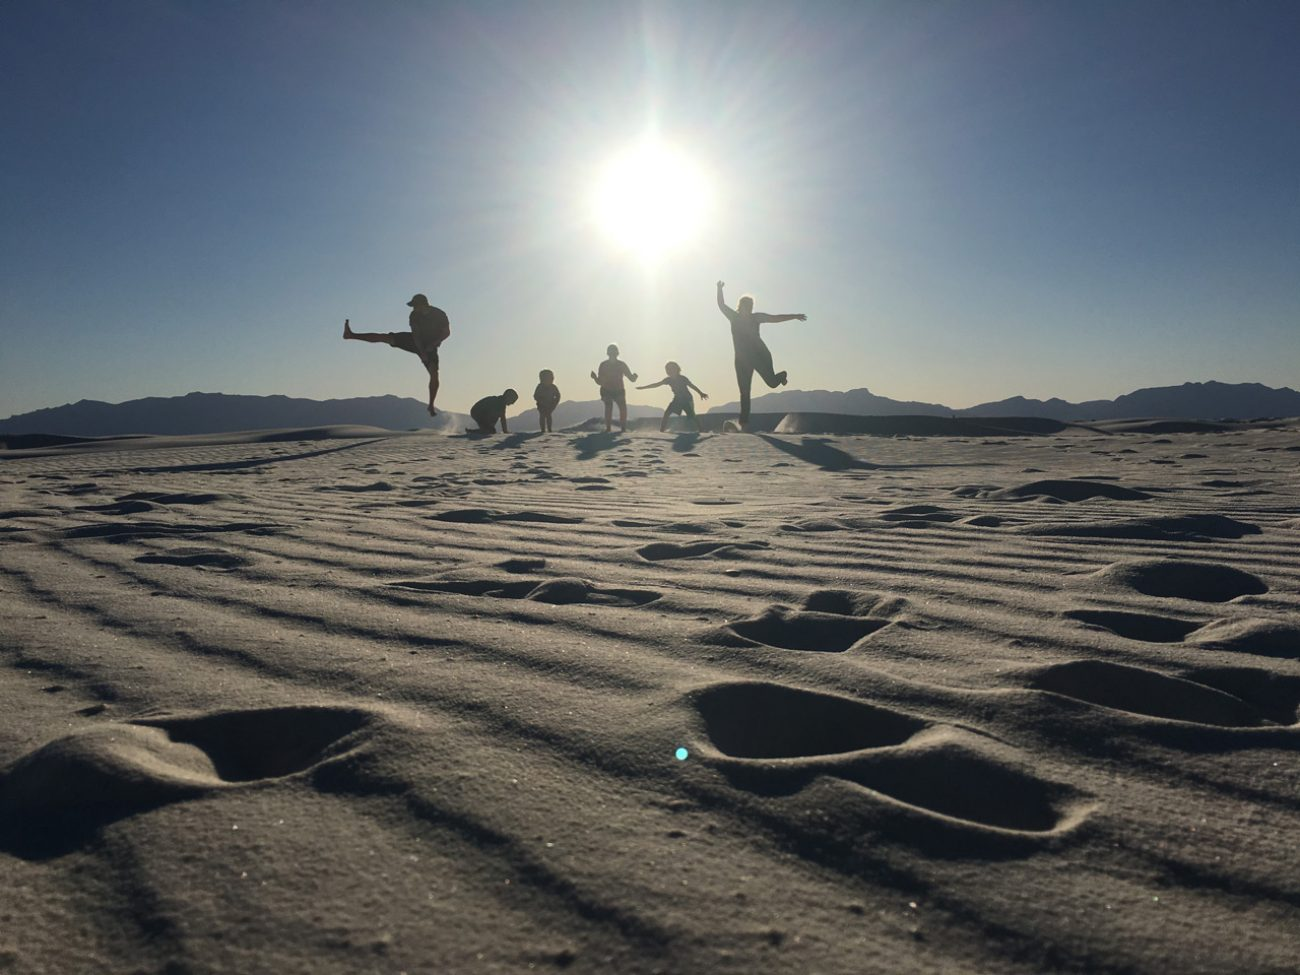 Us jumping at white sands